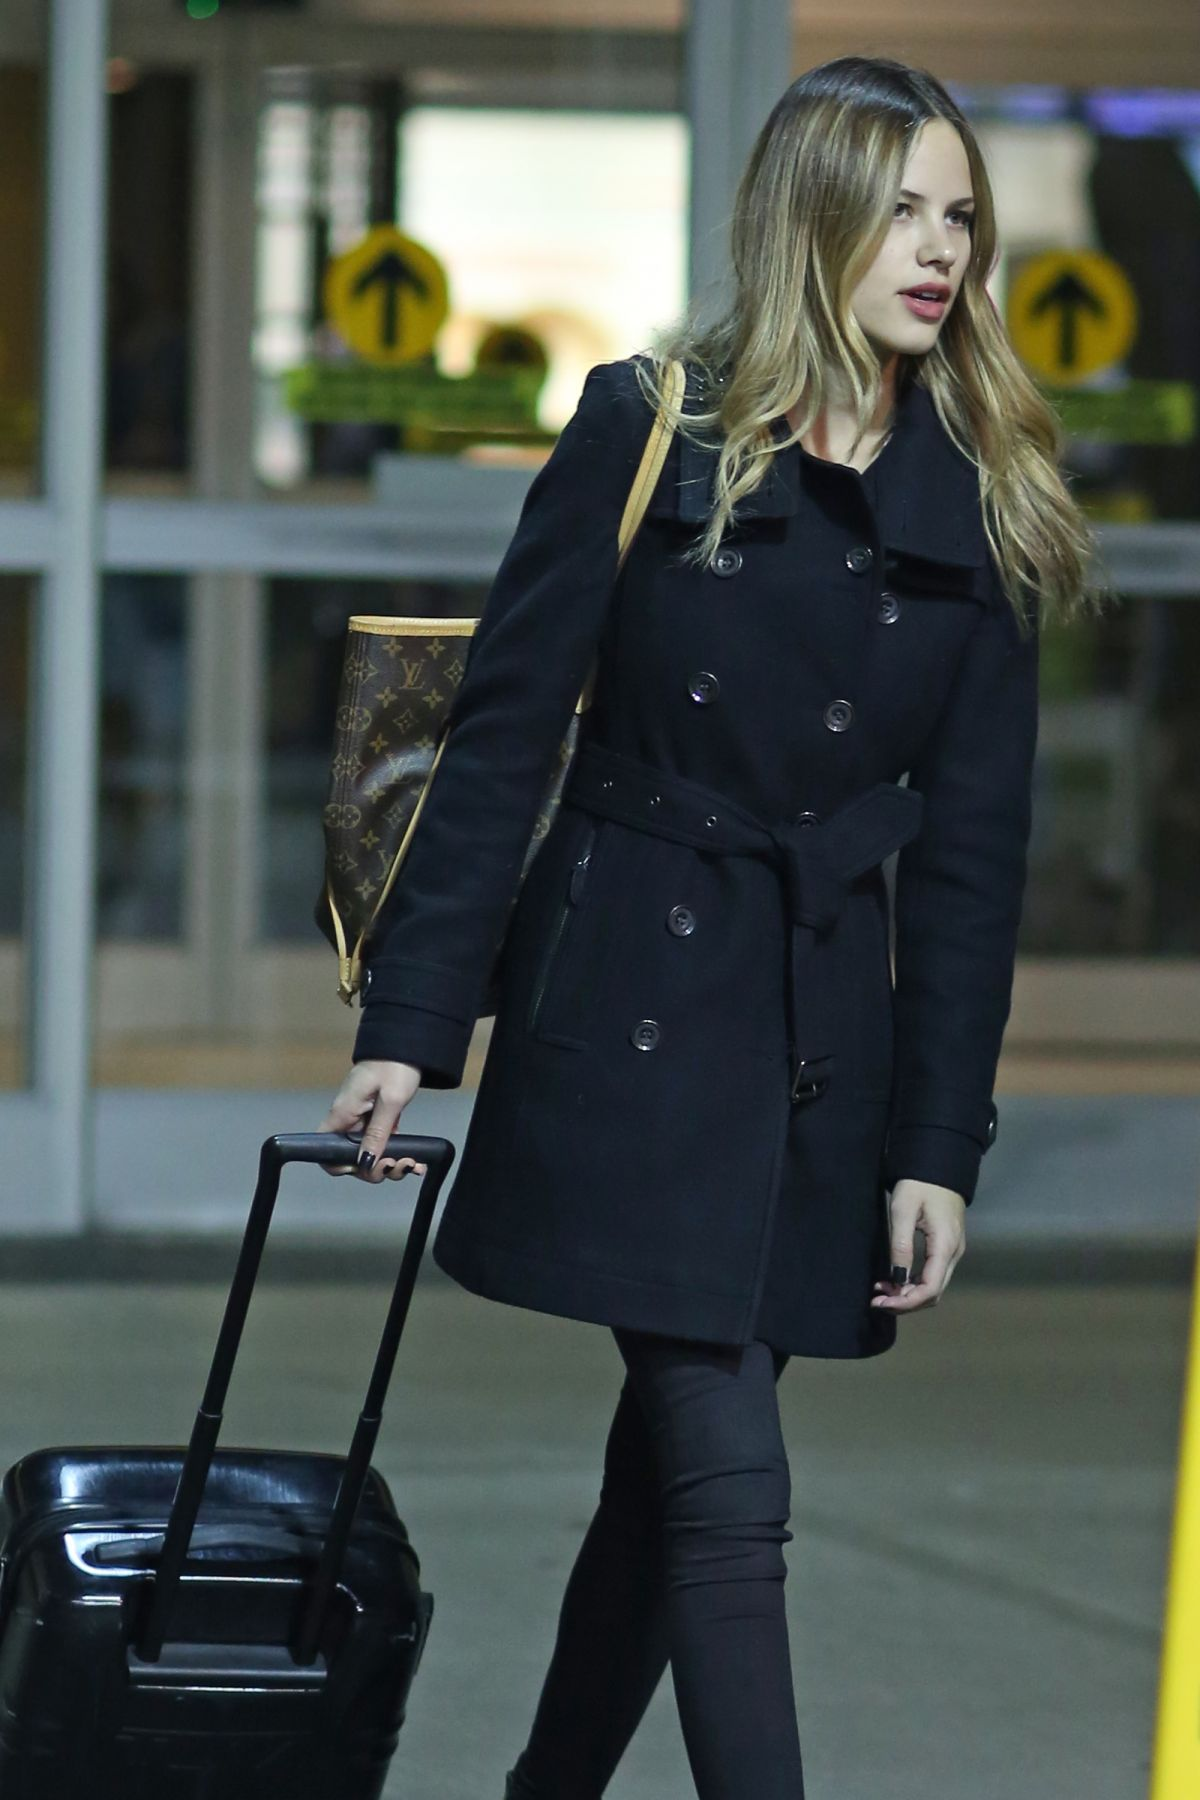 HALTON SAGE at An Airport in Vancouver 11/09/2015